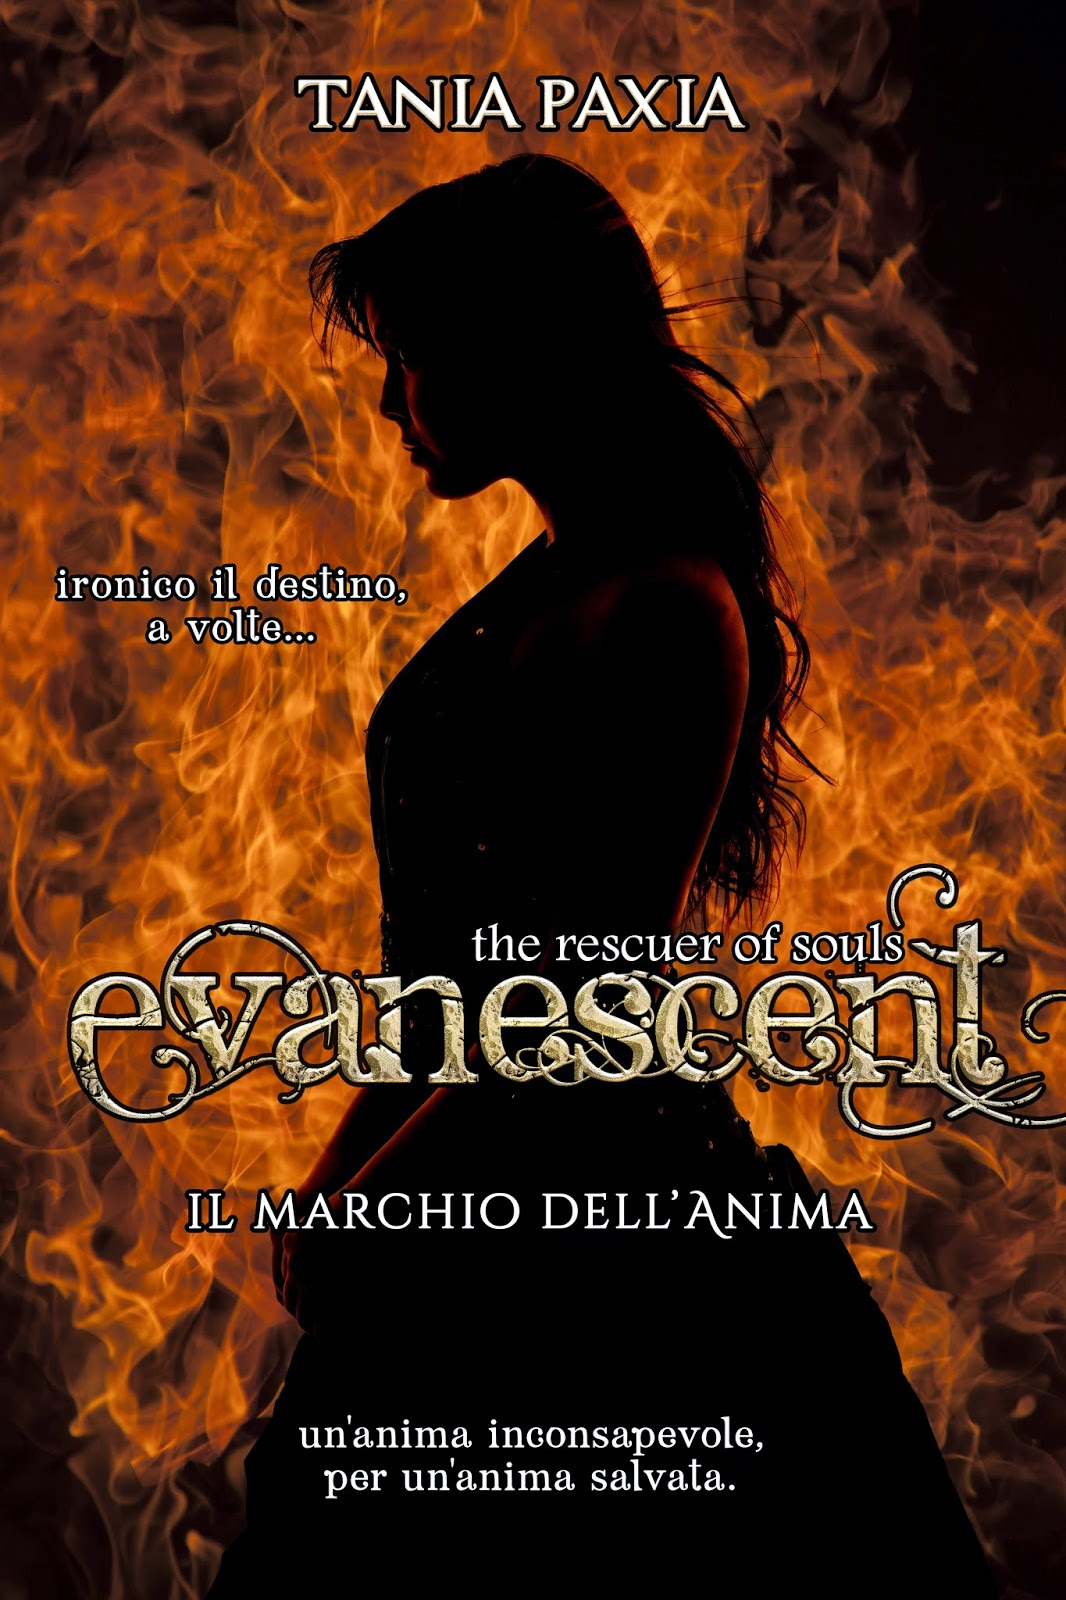 http://www.amazon.it/Il-Marchio-dellAnima-Evanescent-Rescuer-ebook/dp/B00S17VEXG